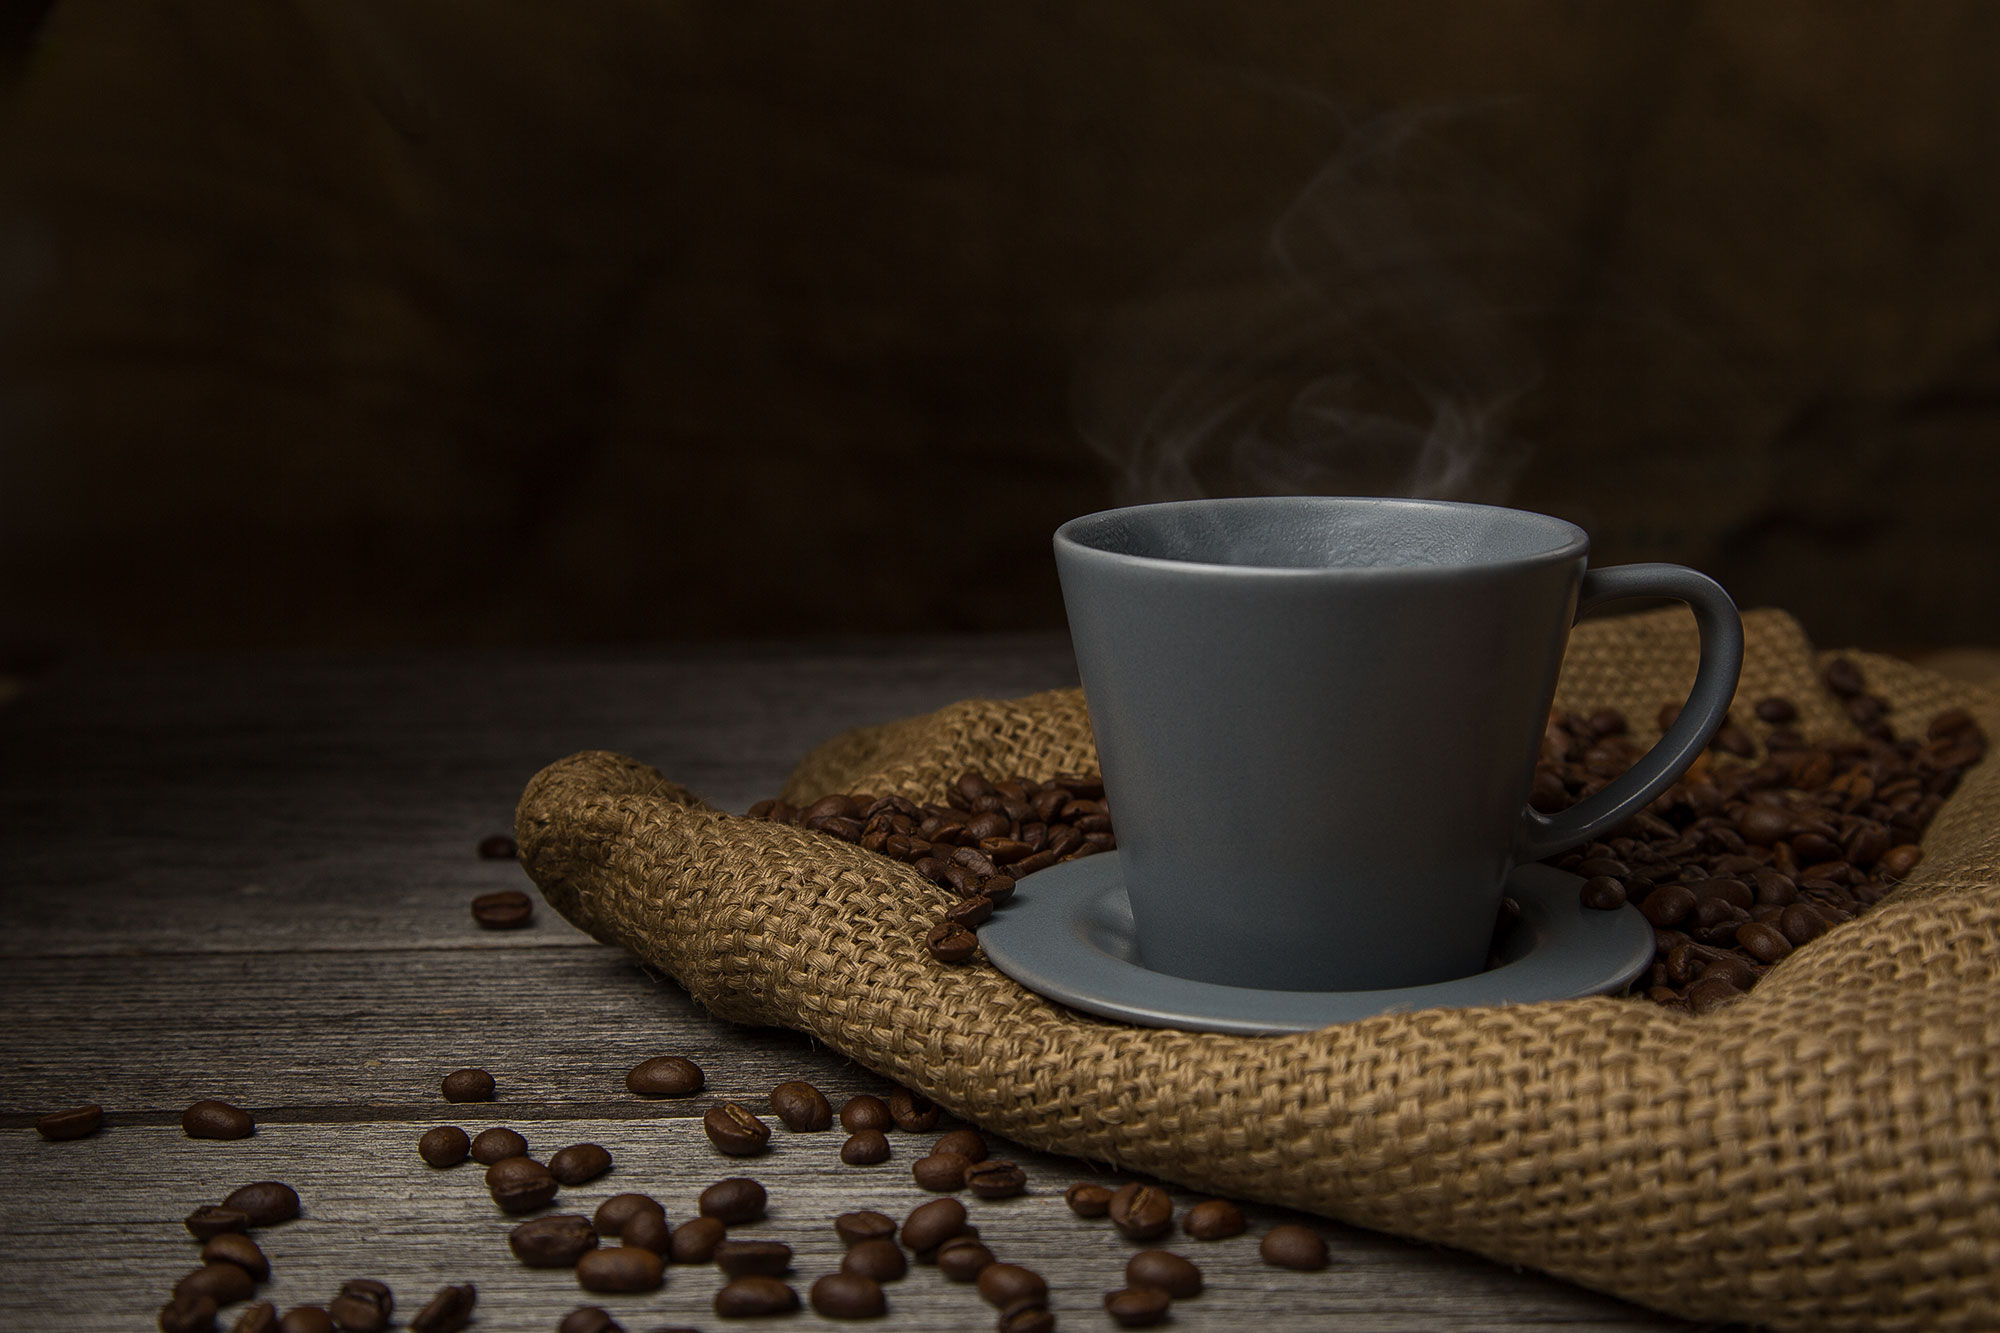 Coffee moody photography by Adrian Kilchherr; Food; Beverage Photographer